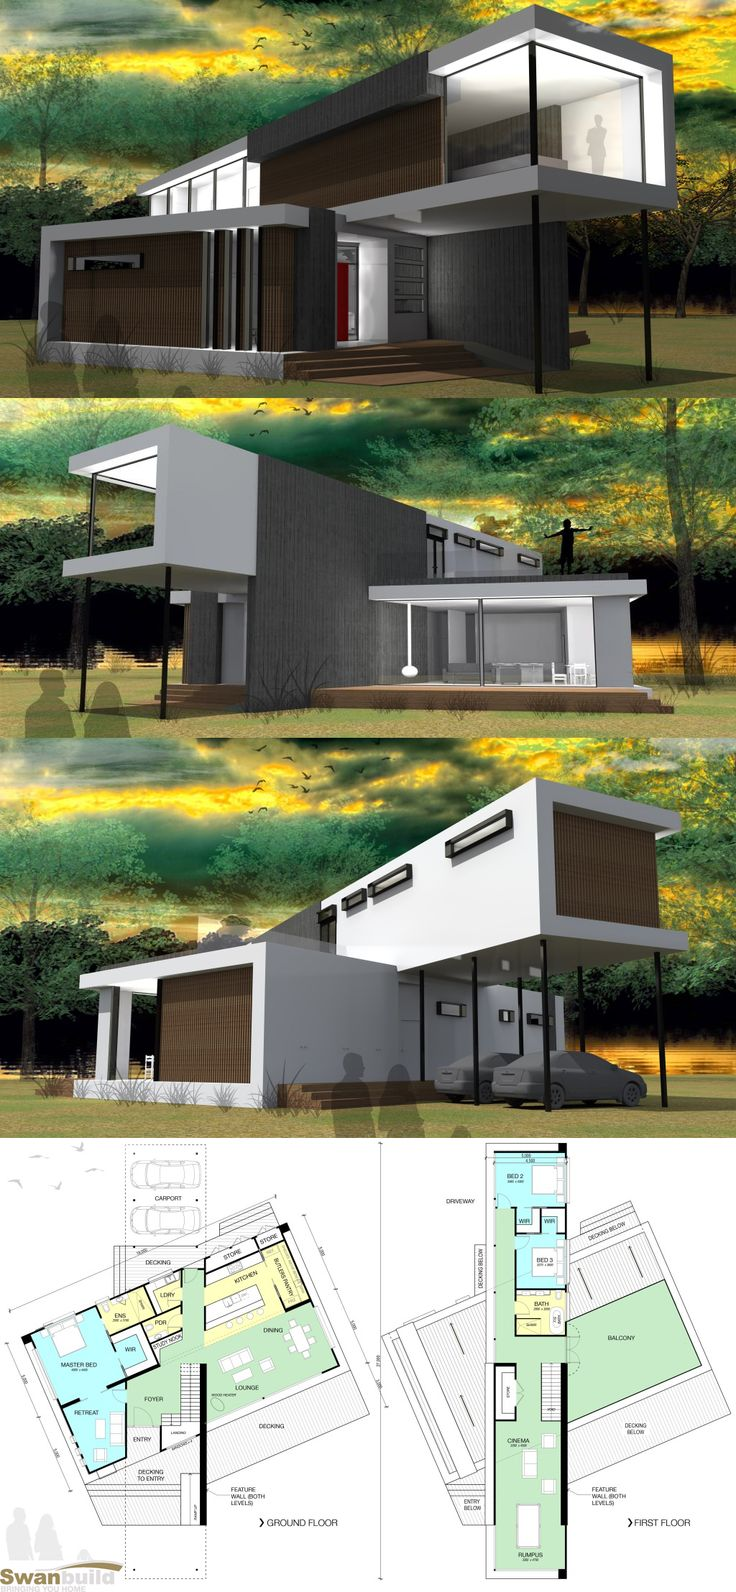 Cube 2 Compact Design By Swanbuild These New Designs Are Away From The  Traditional Built Home